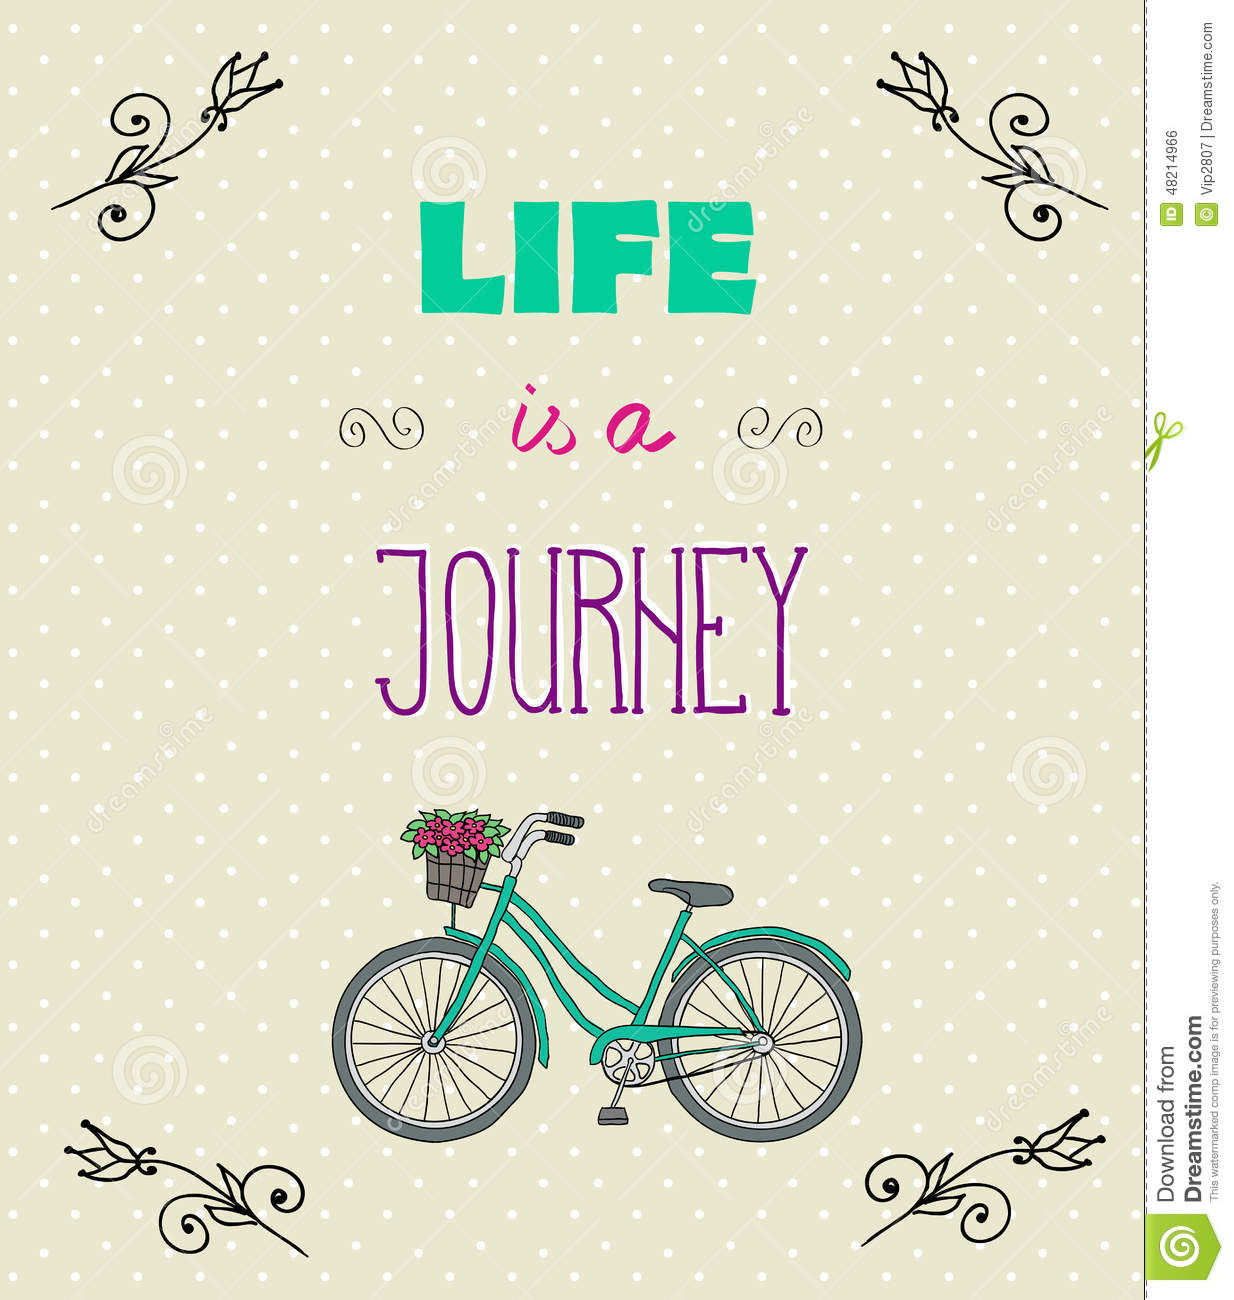 inspirational download images of a renewed